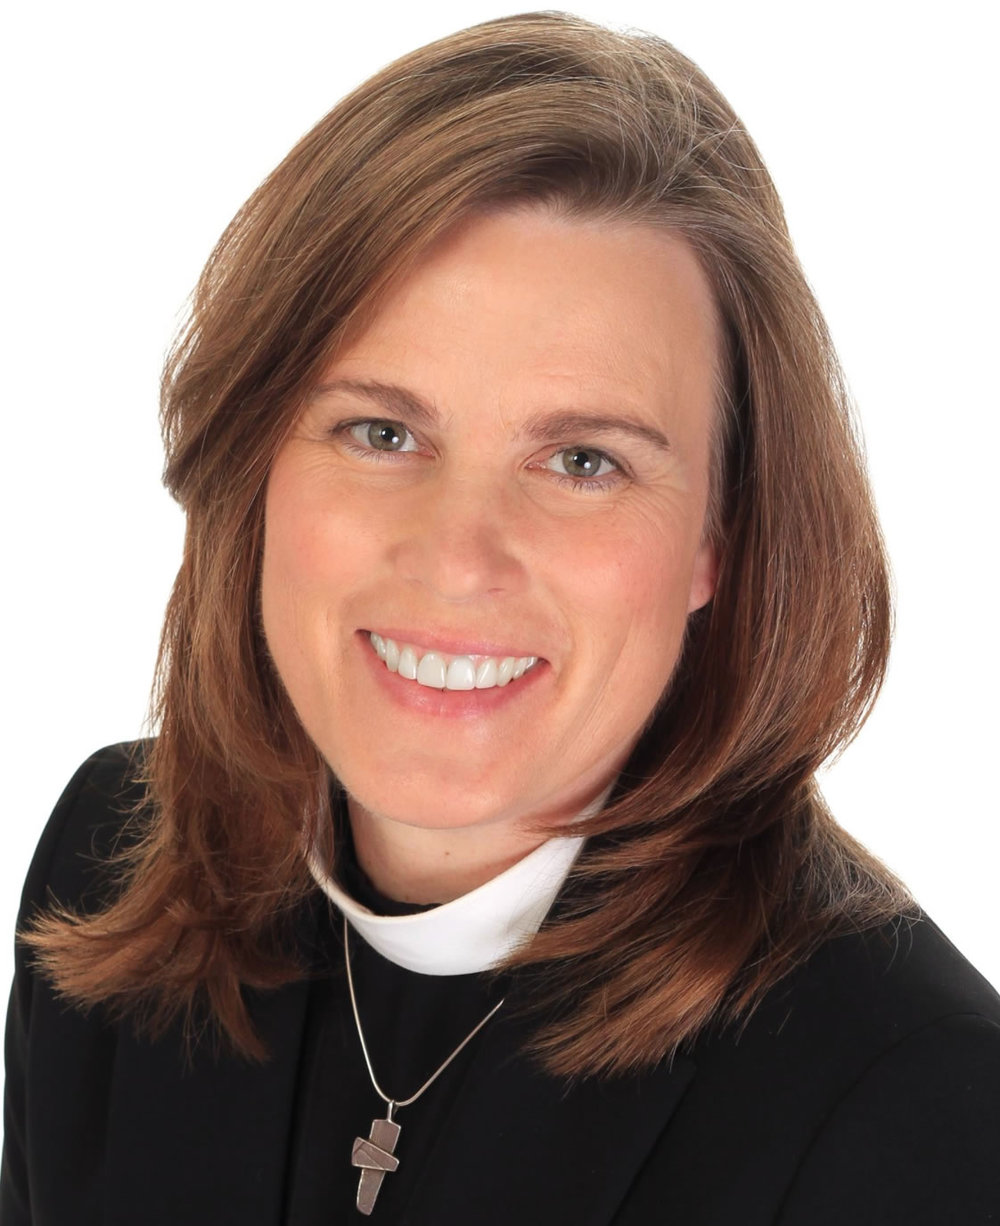 The Rev. Andrea McMillin, Canon to the Ordinary